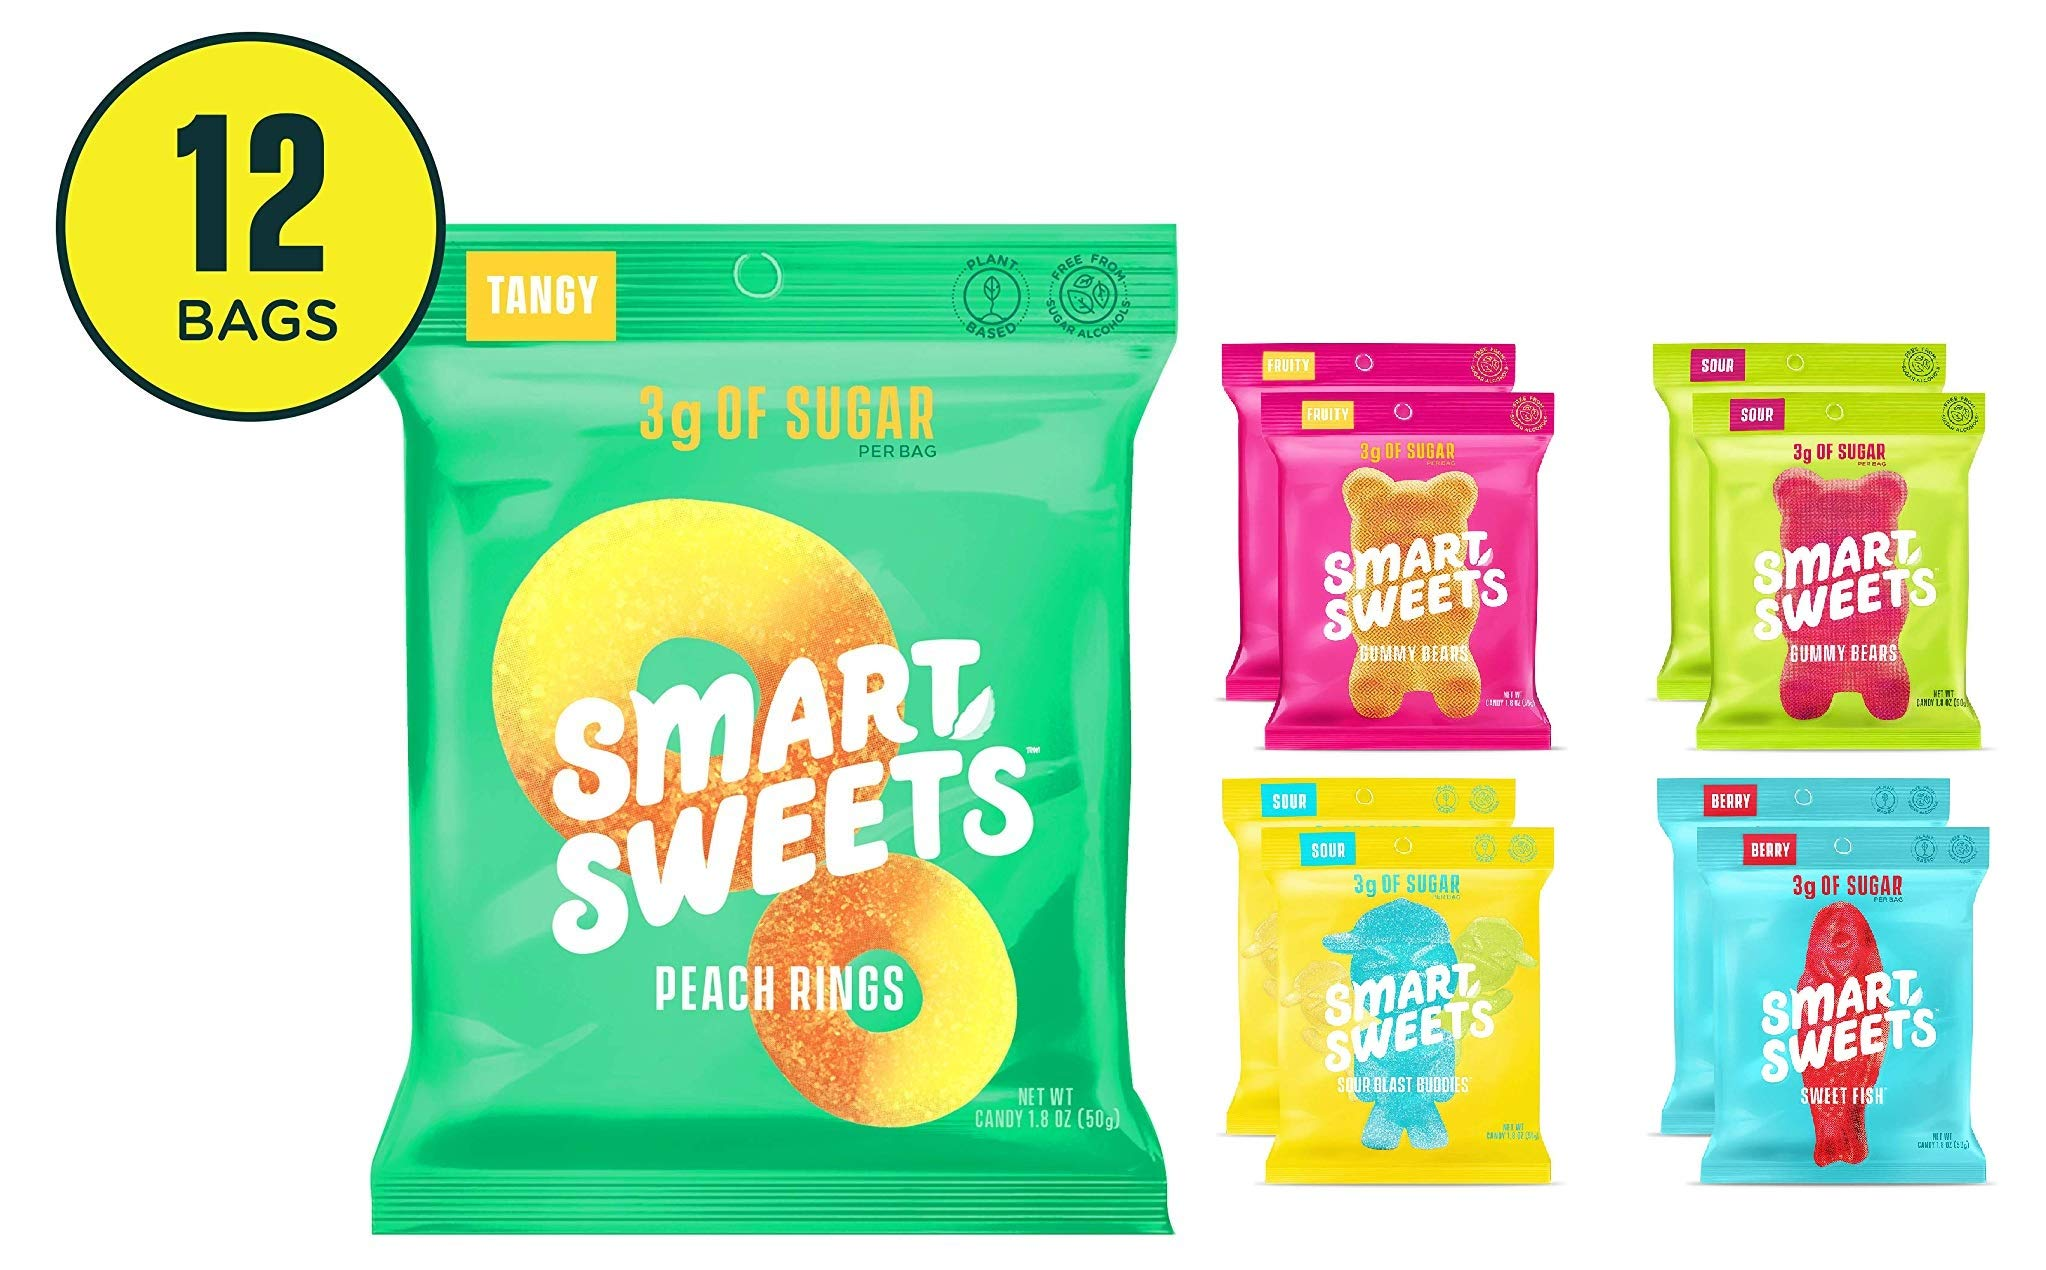 Peach Rings 1.8 Oz Bags (Box Of 12) & Variety Pack 1.8 oz Bags (Box of 8) Bundle Edition by SmartSweets